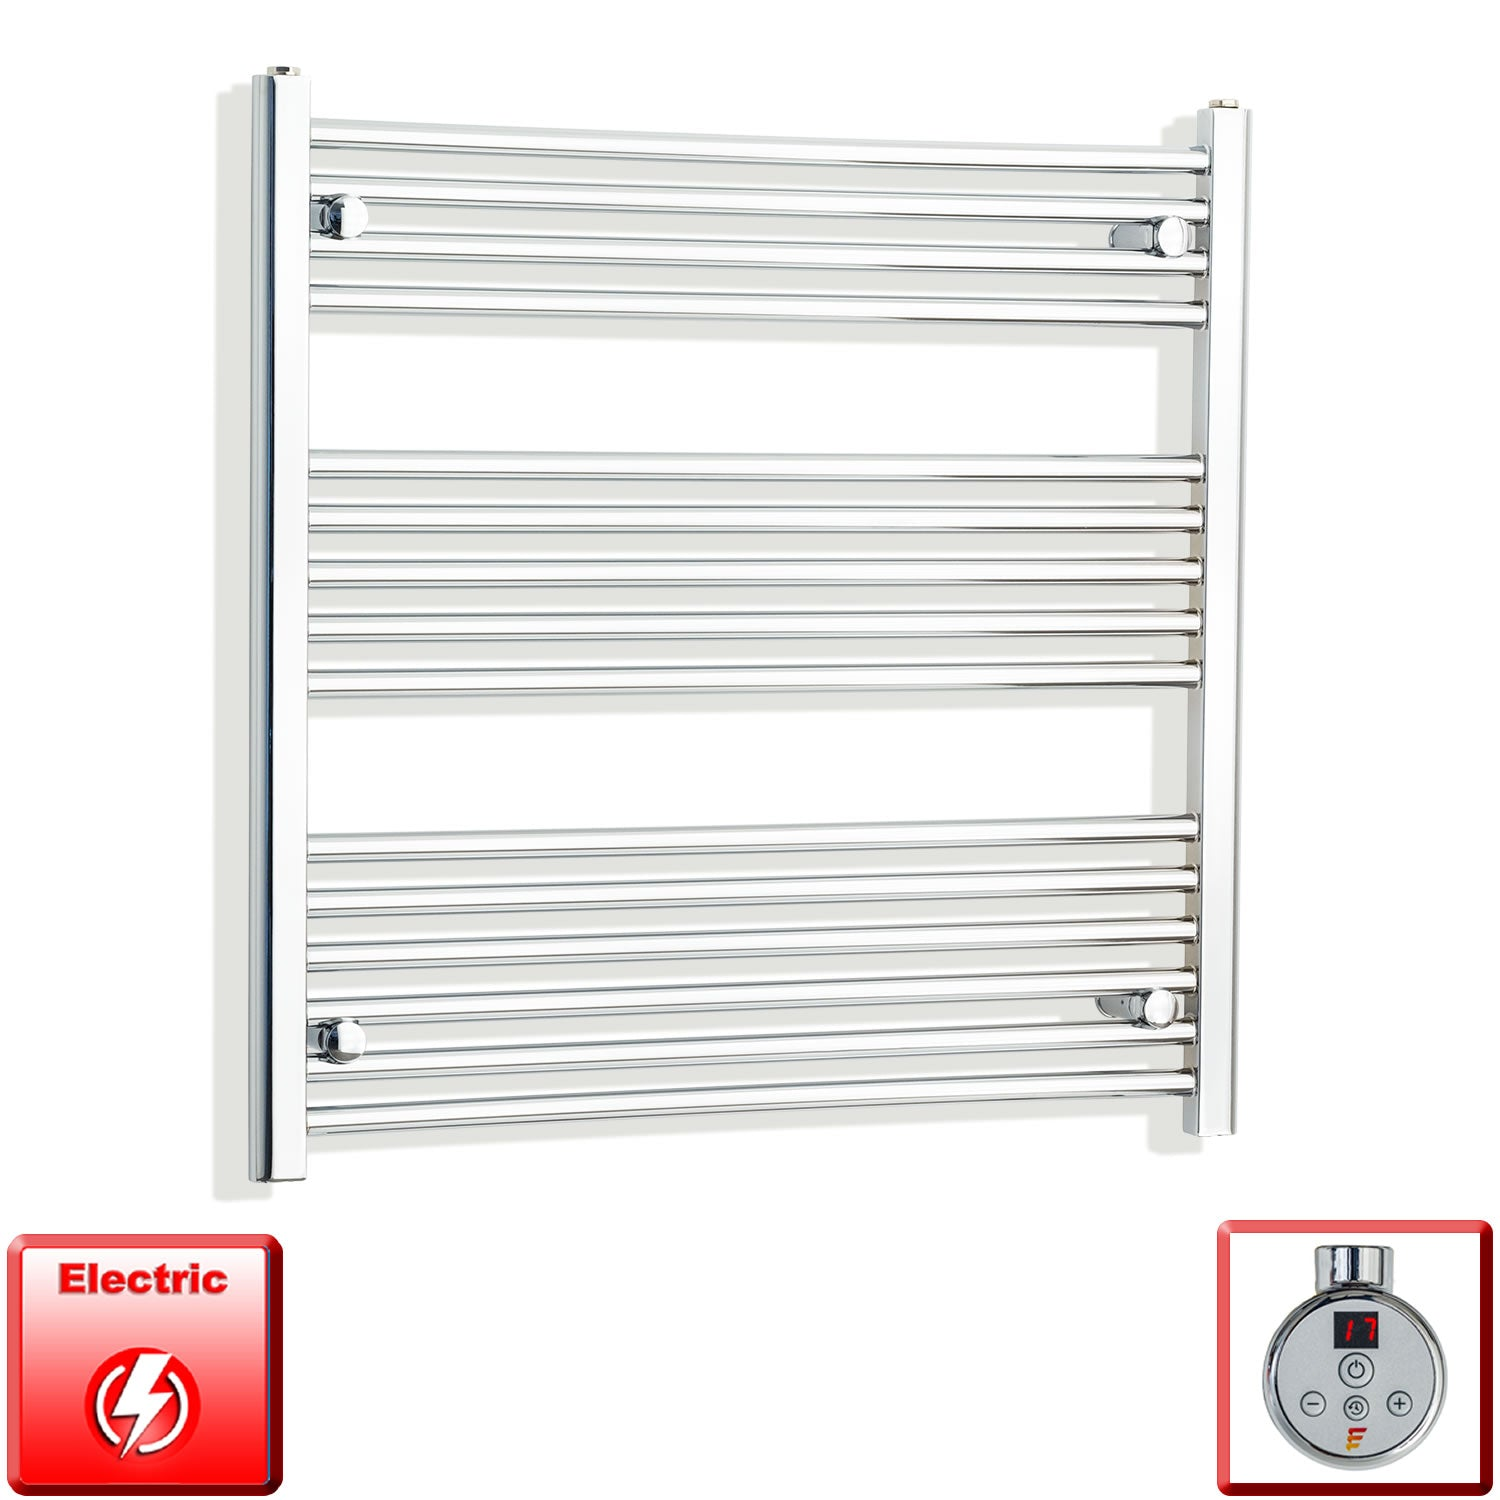 750mm Wide 800mm High Flat Or Curved Chrome Pre-Filled Electric Heated Towel Rail Radiator HTR